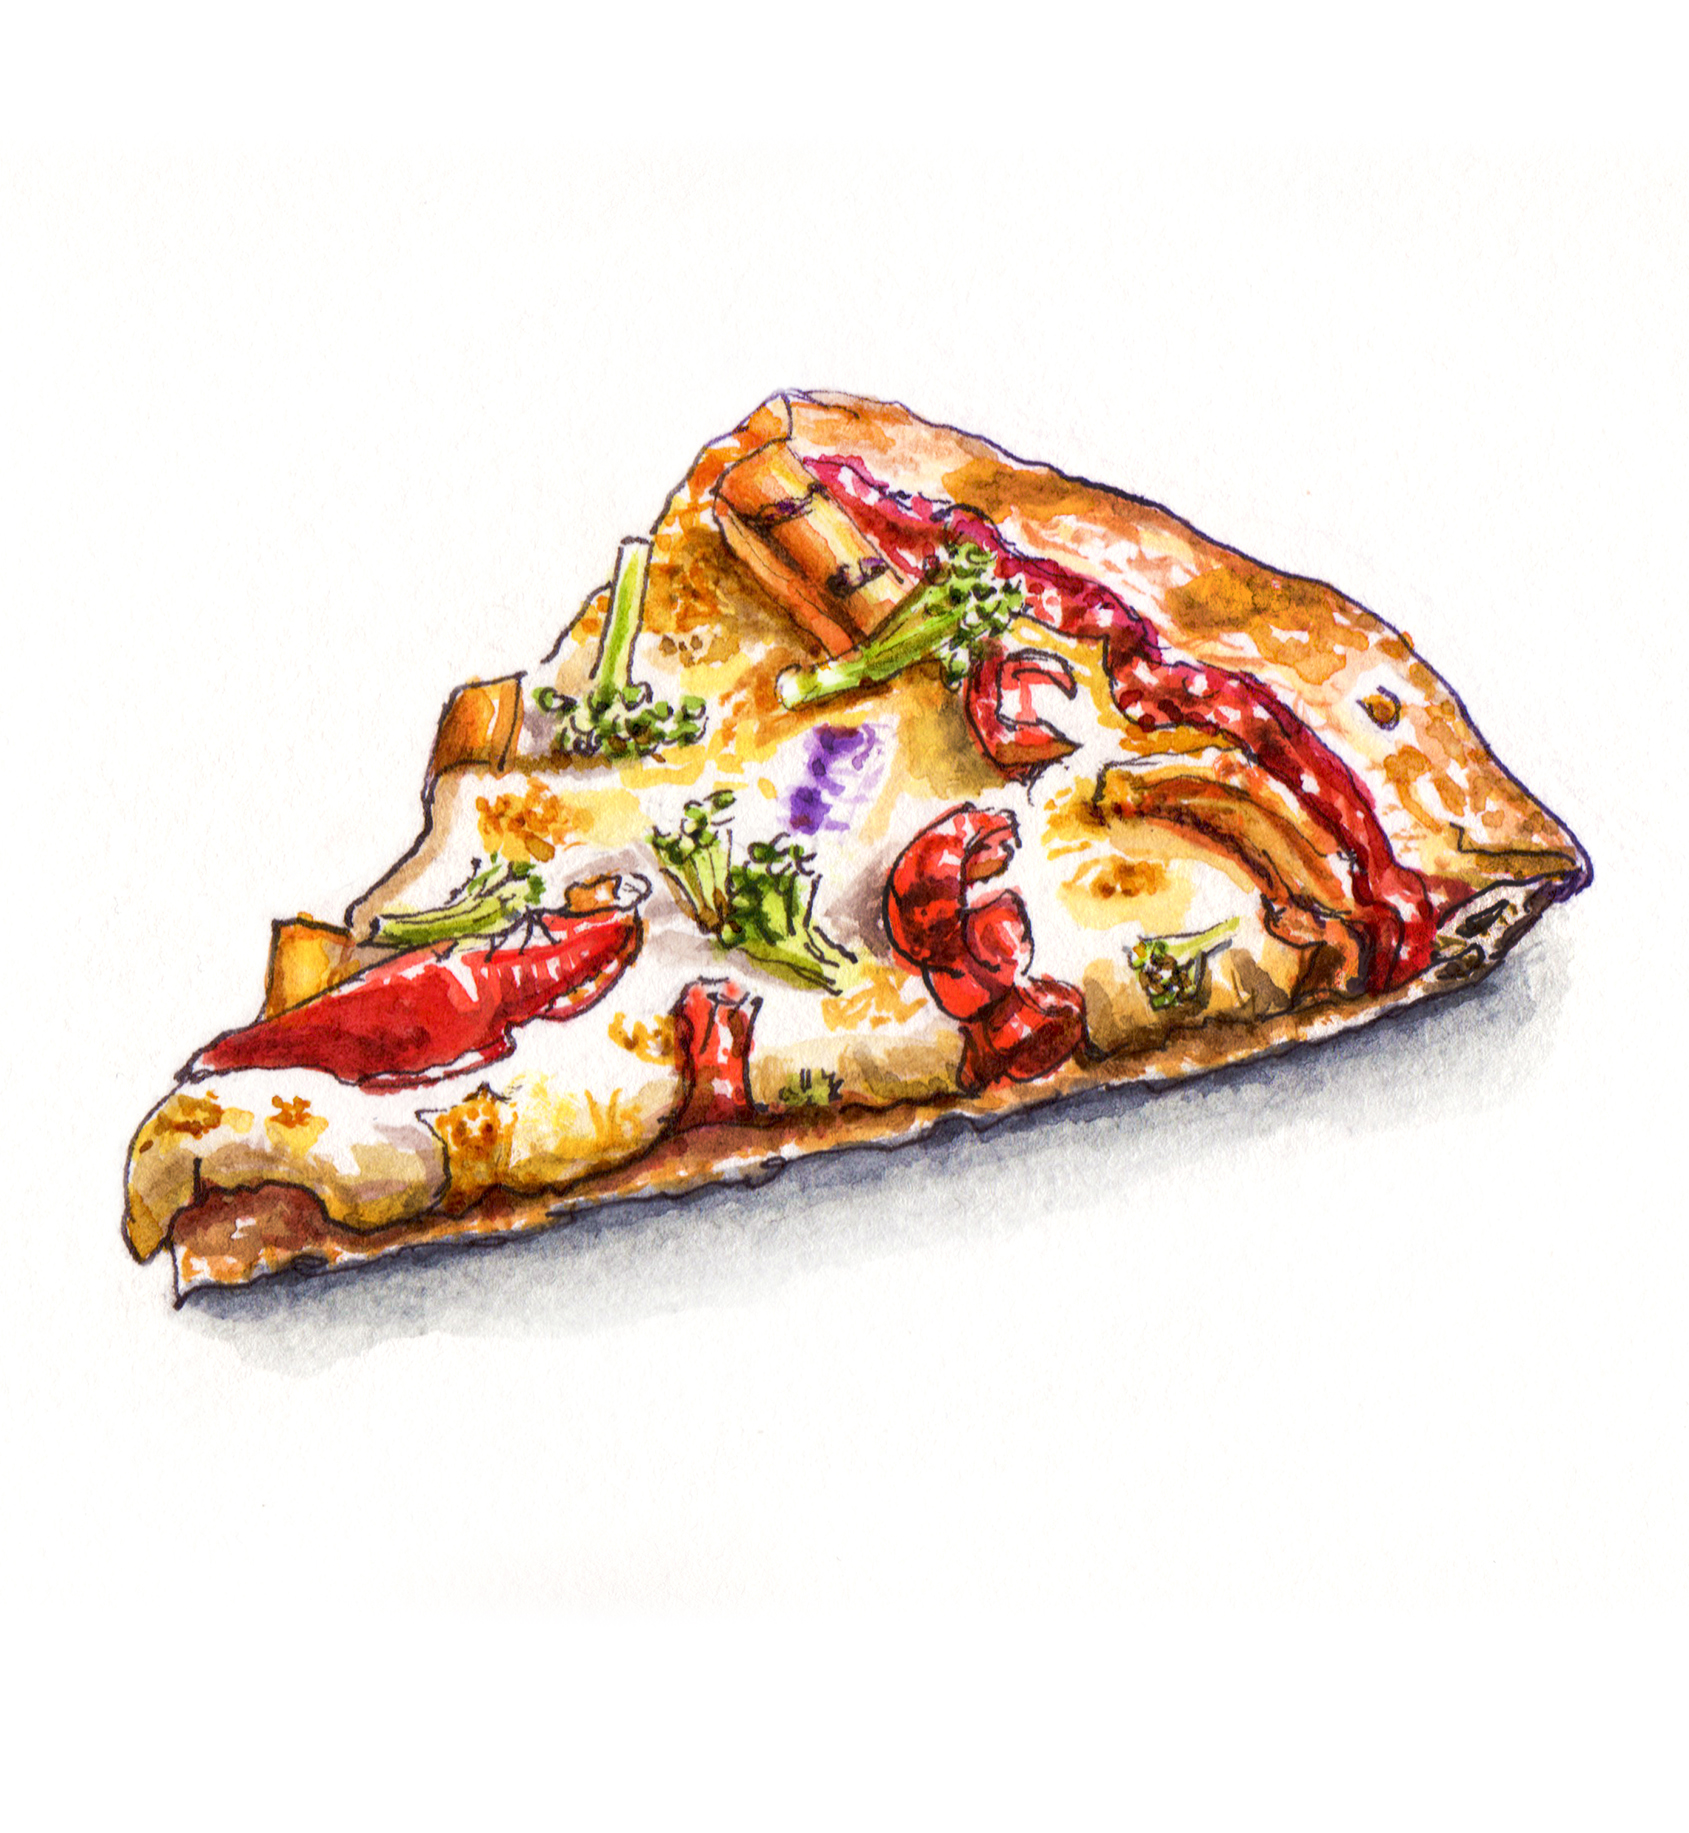 Easy Crescent Veggie Pizza Recipe - Pillsbury.com